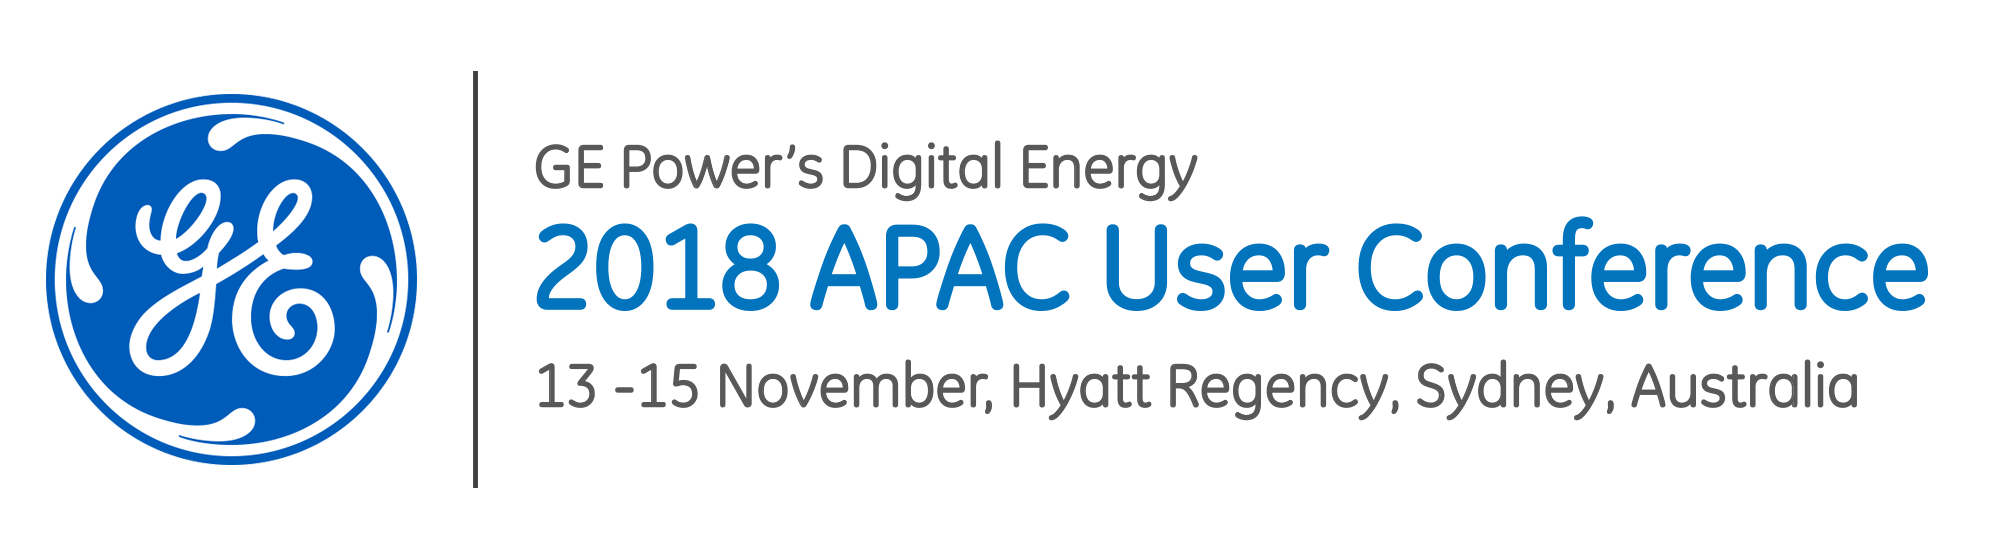 GE Power's Digital Energy 2018 APAC User Conference